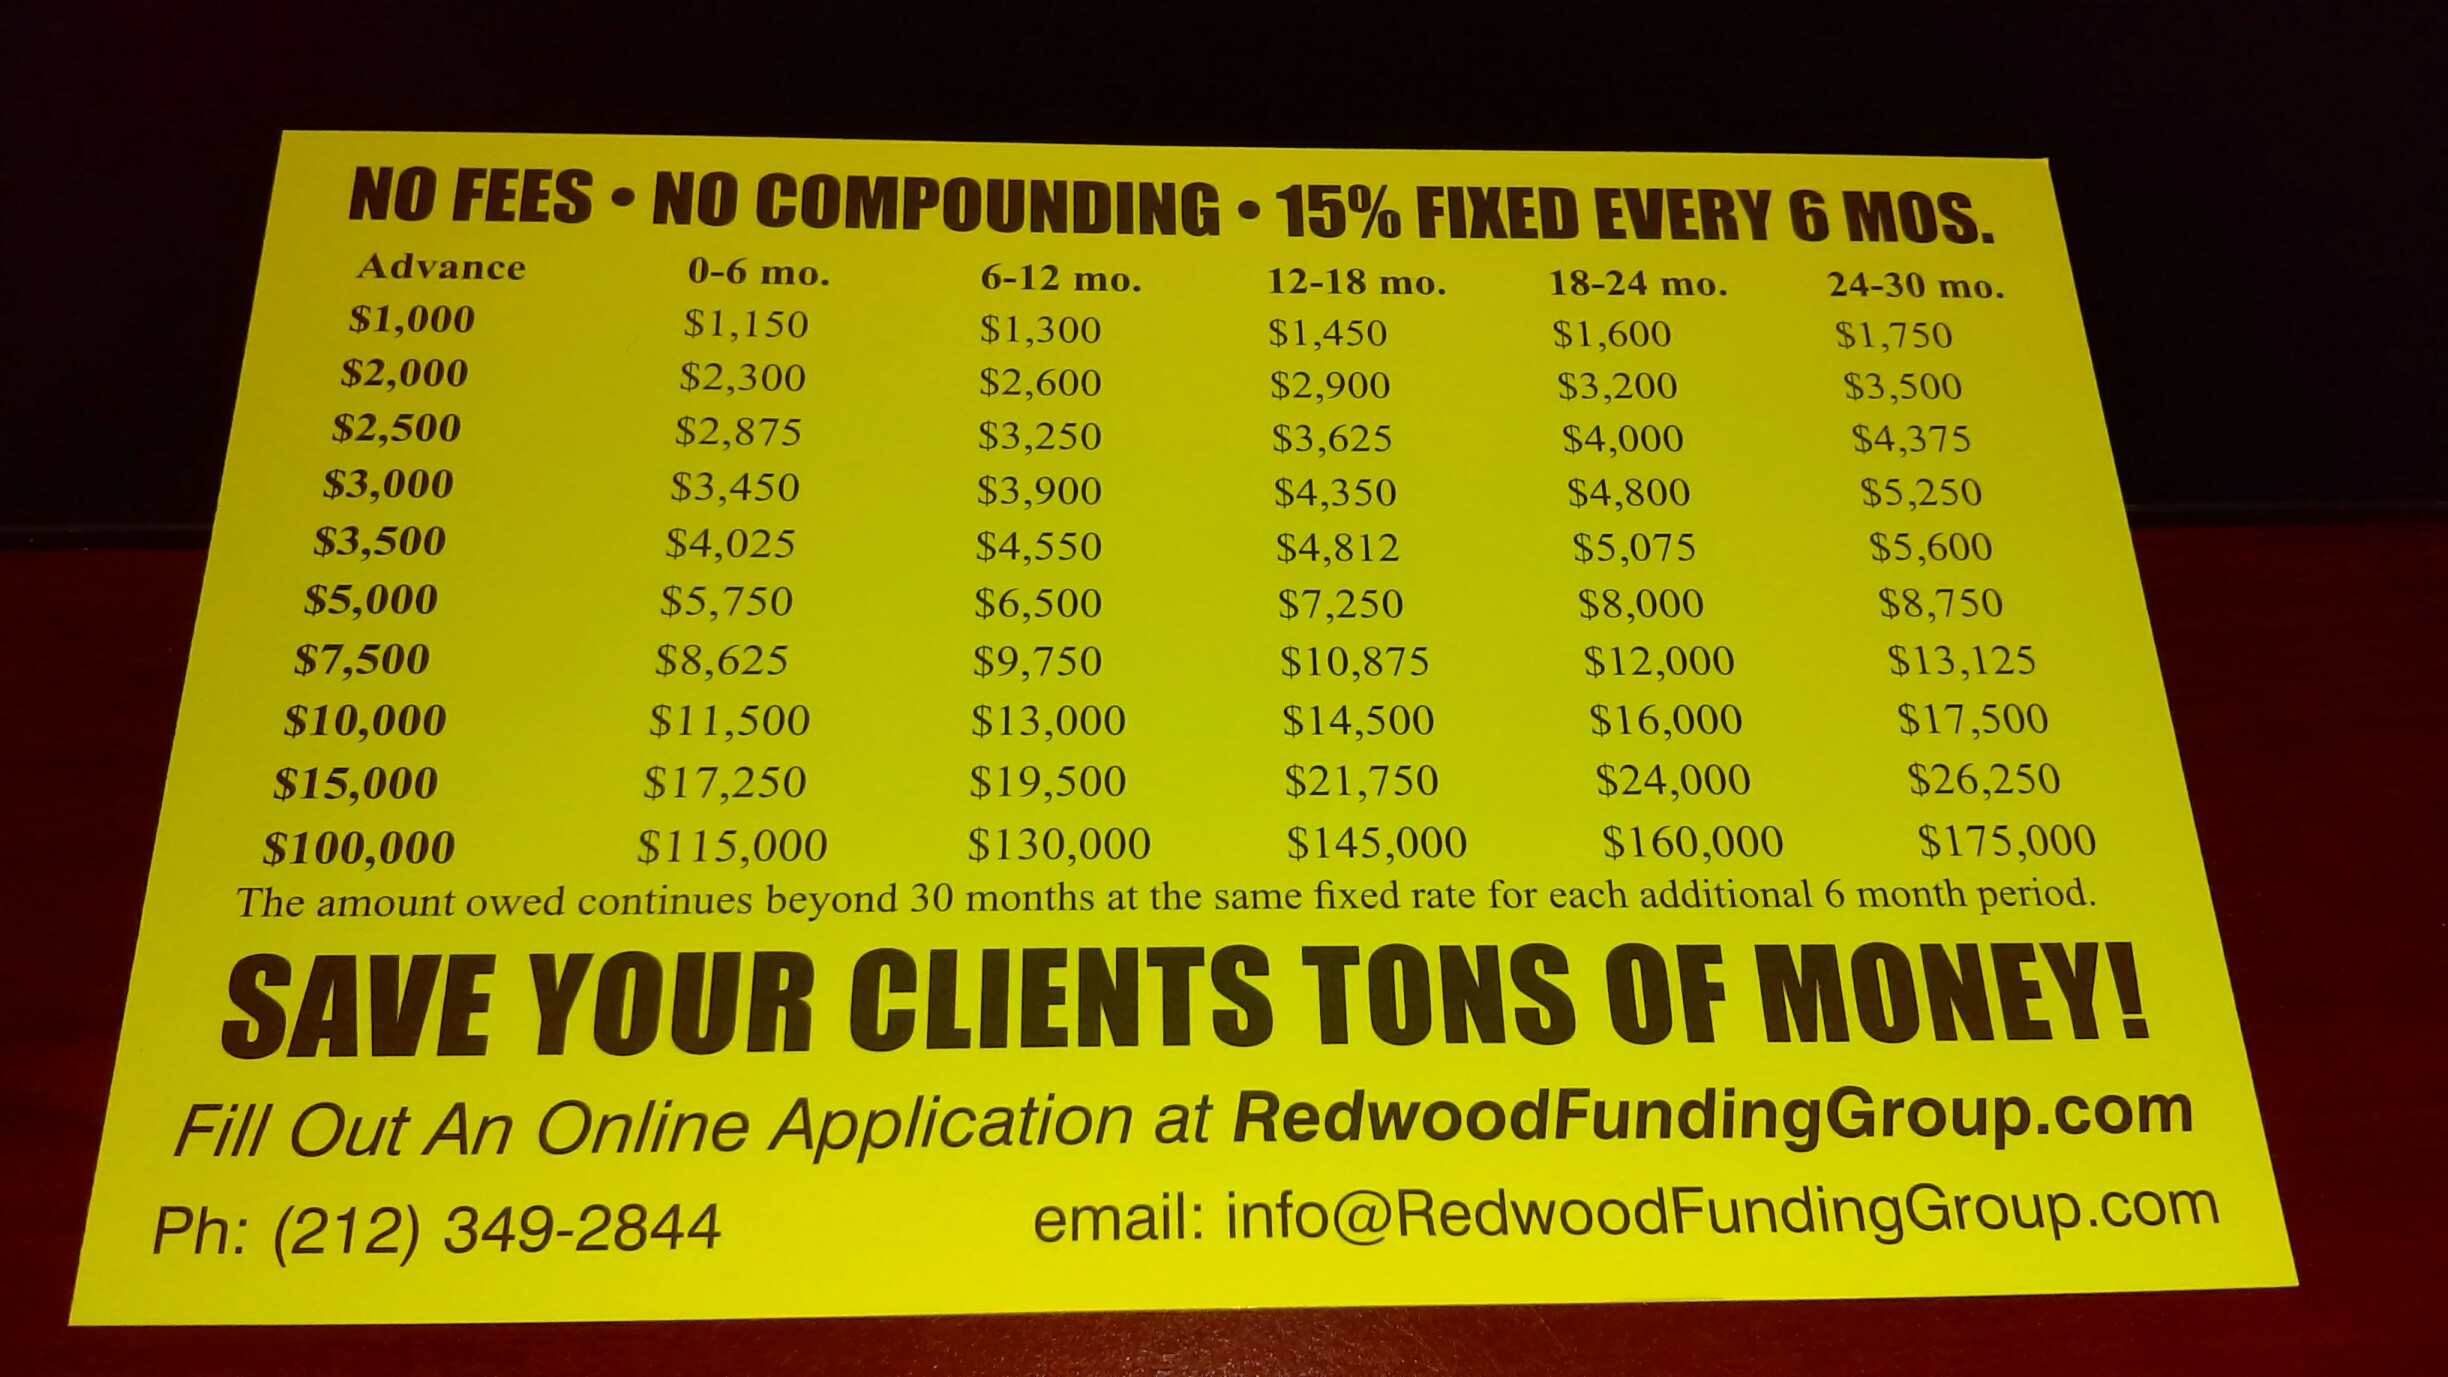 Compare our Rates to ANYONEees. No compound Interest, 15%.